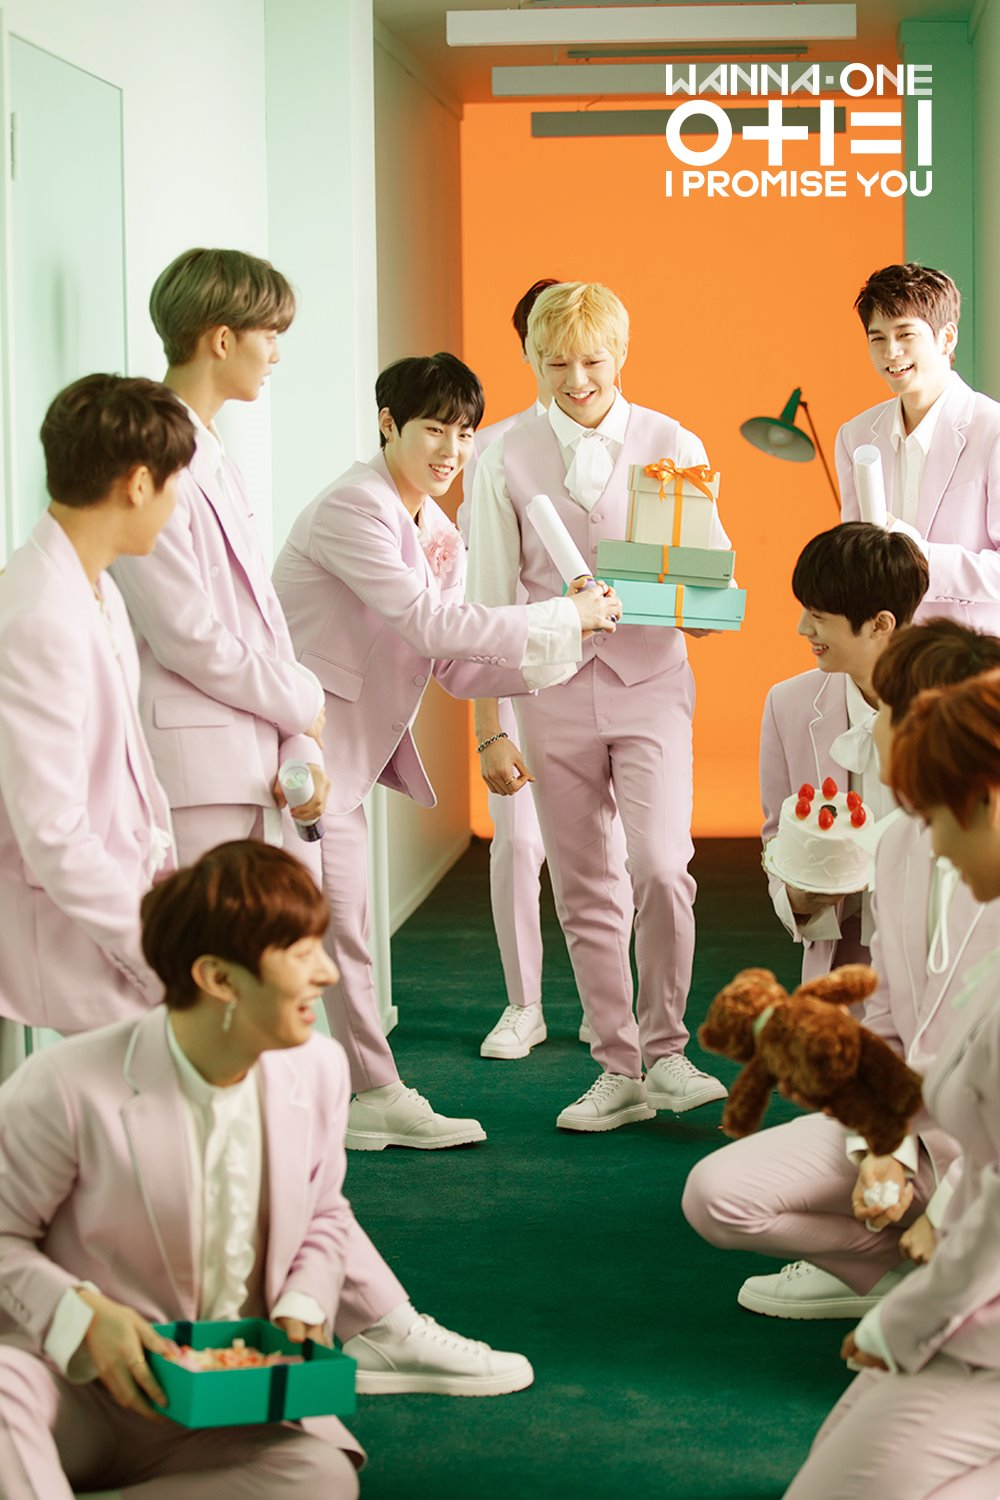 180305 Melon Update With Wanna One I Promise You Special Theme